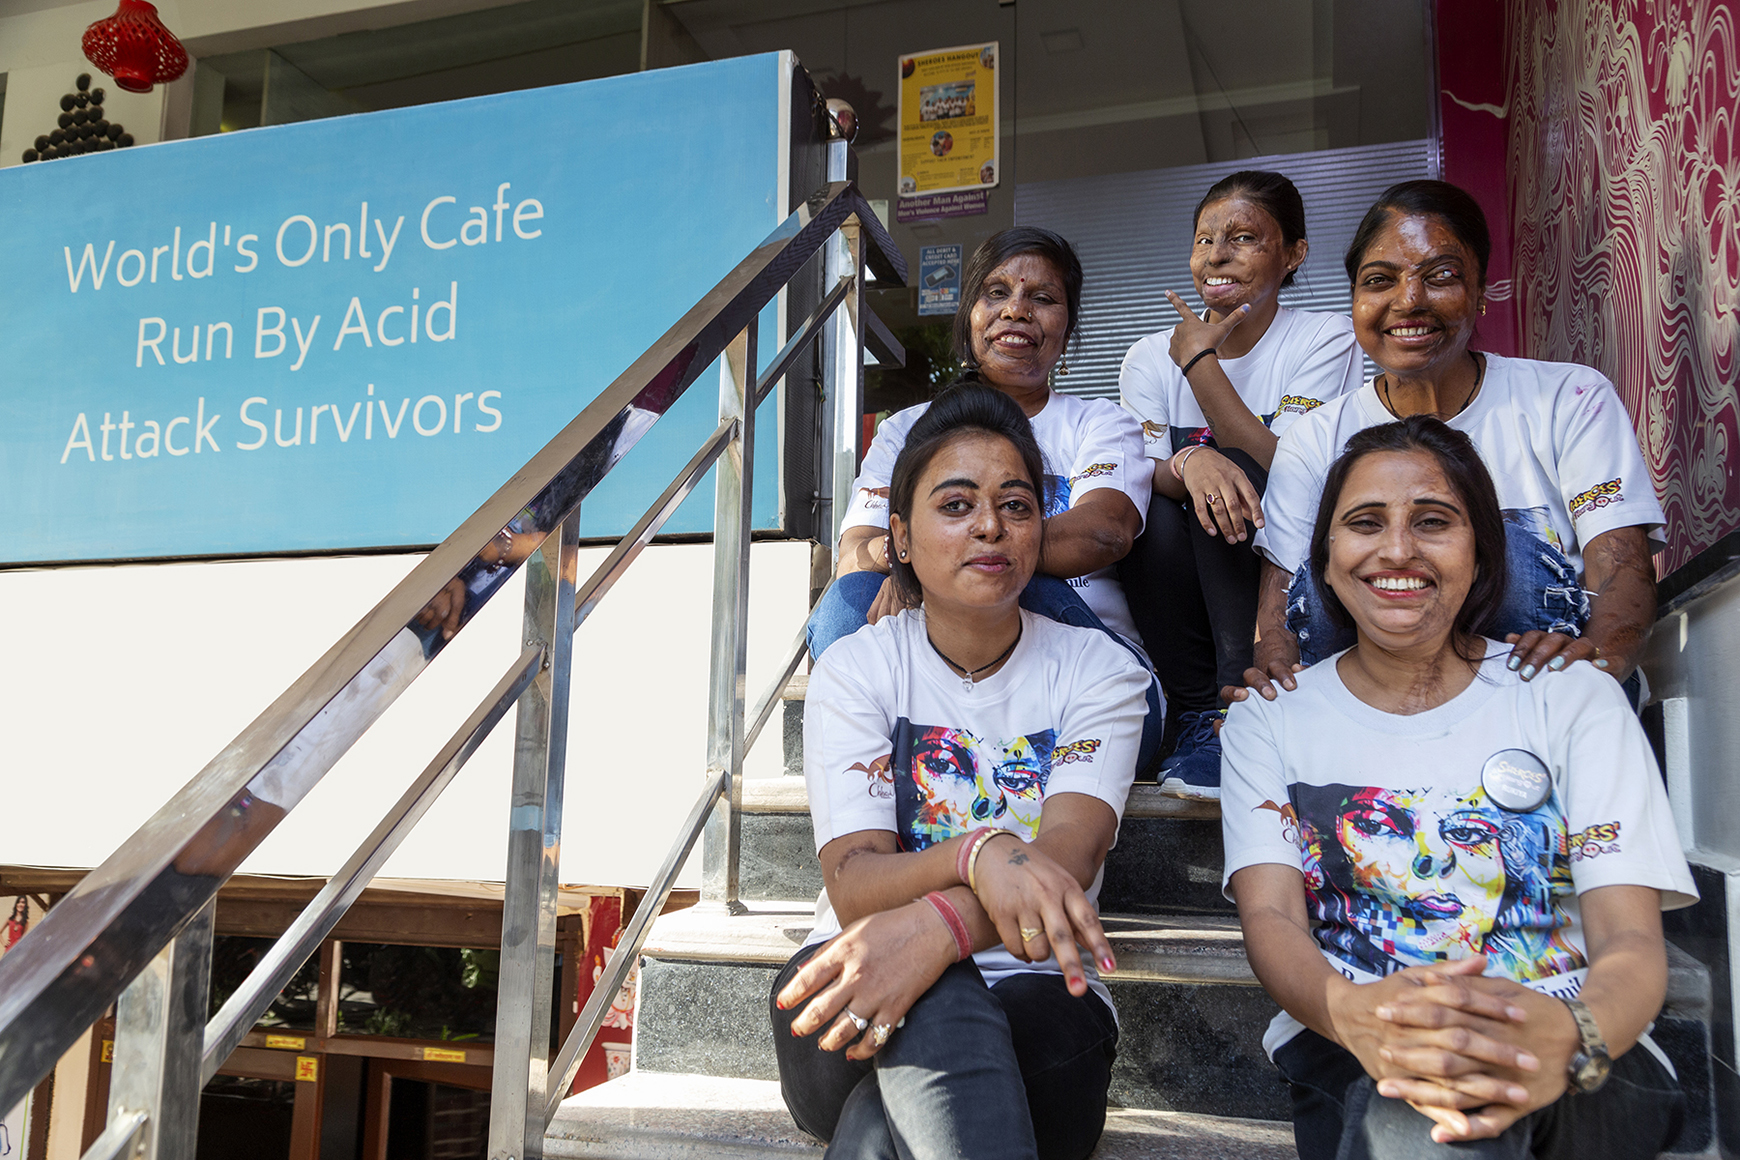 """The Sheroes dressed in their uniform of jeans and white T-shirt sit on the front steps of the café. Front row: Dolly and Rukaiya. Back row: Madhu, Roopa and Bala. To their left is a large sky-blue board with white lettering that says """"World's only café run by acid attack survivors""""."""